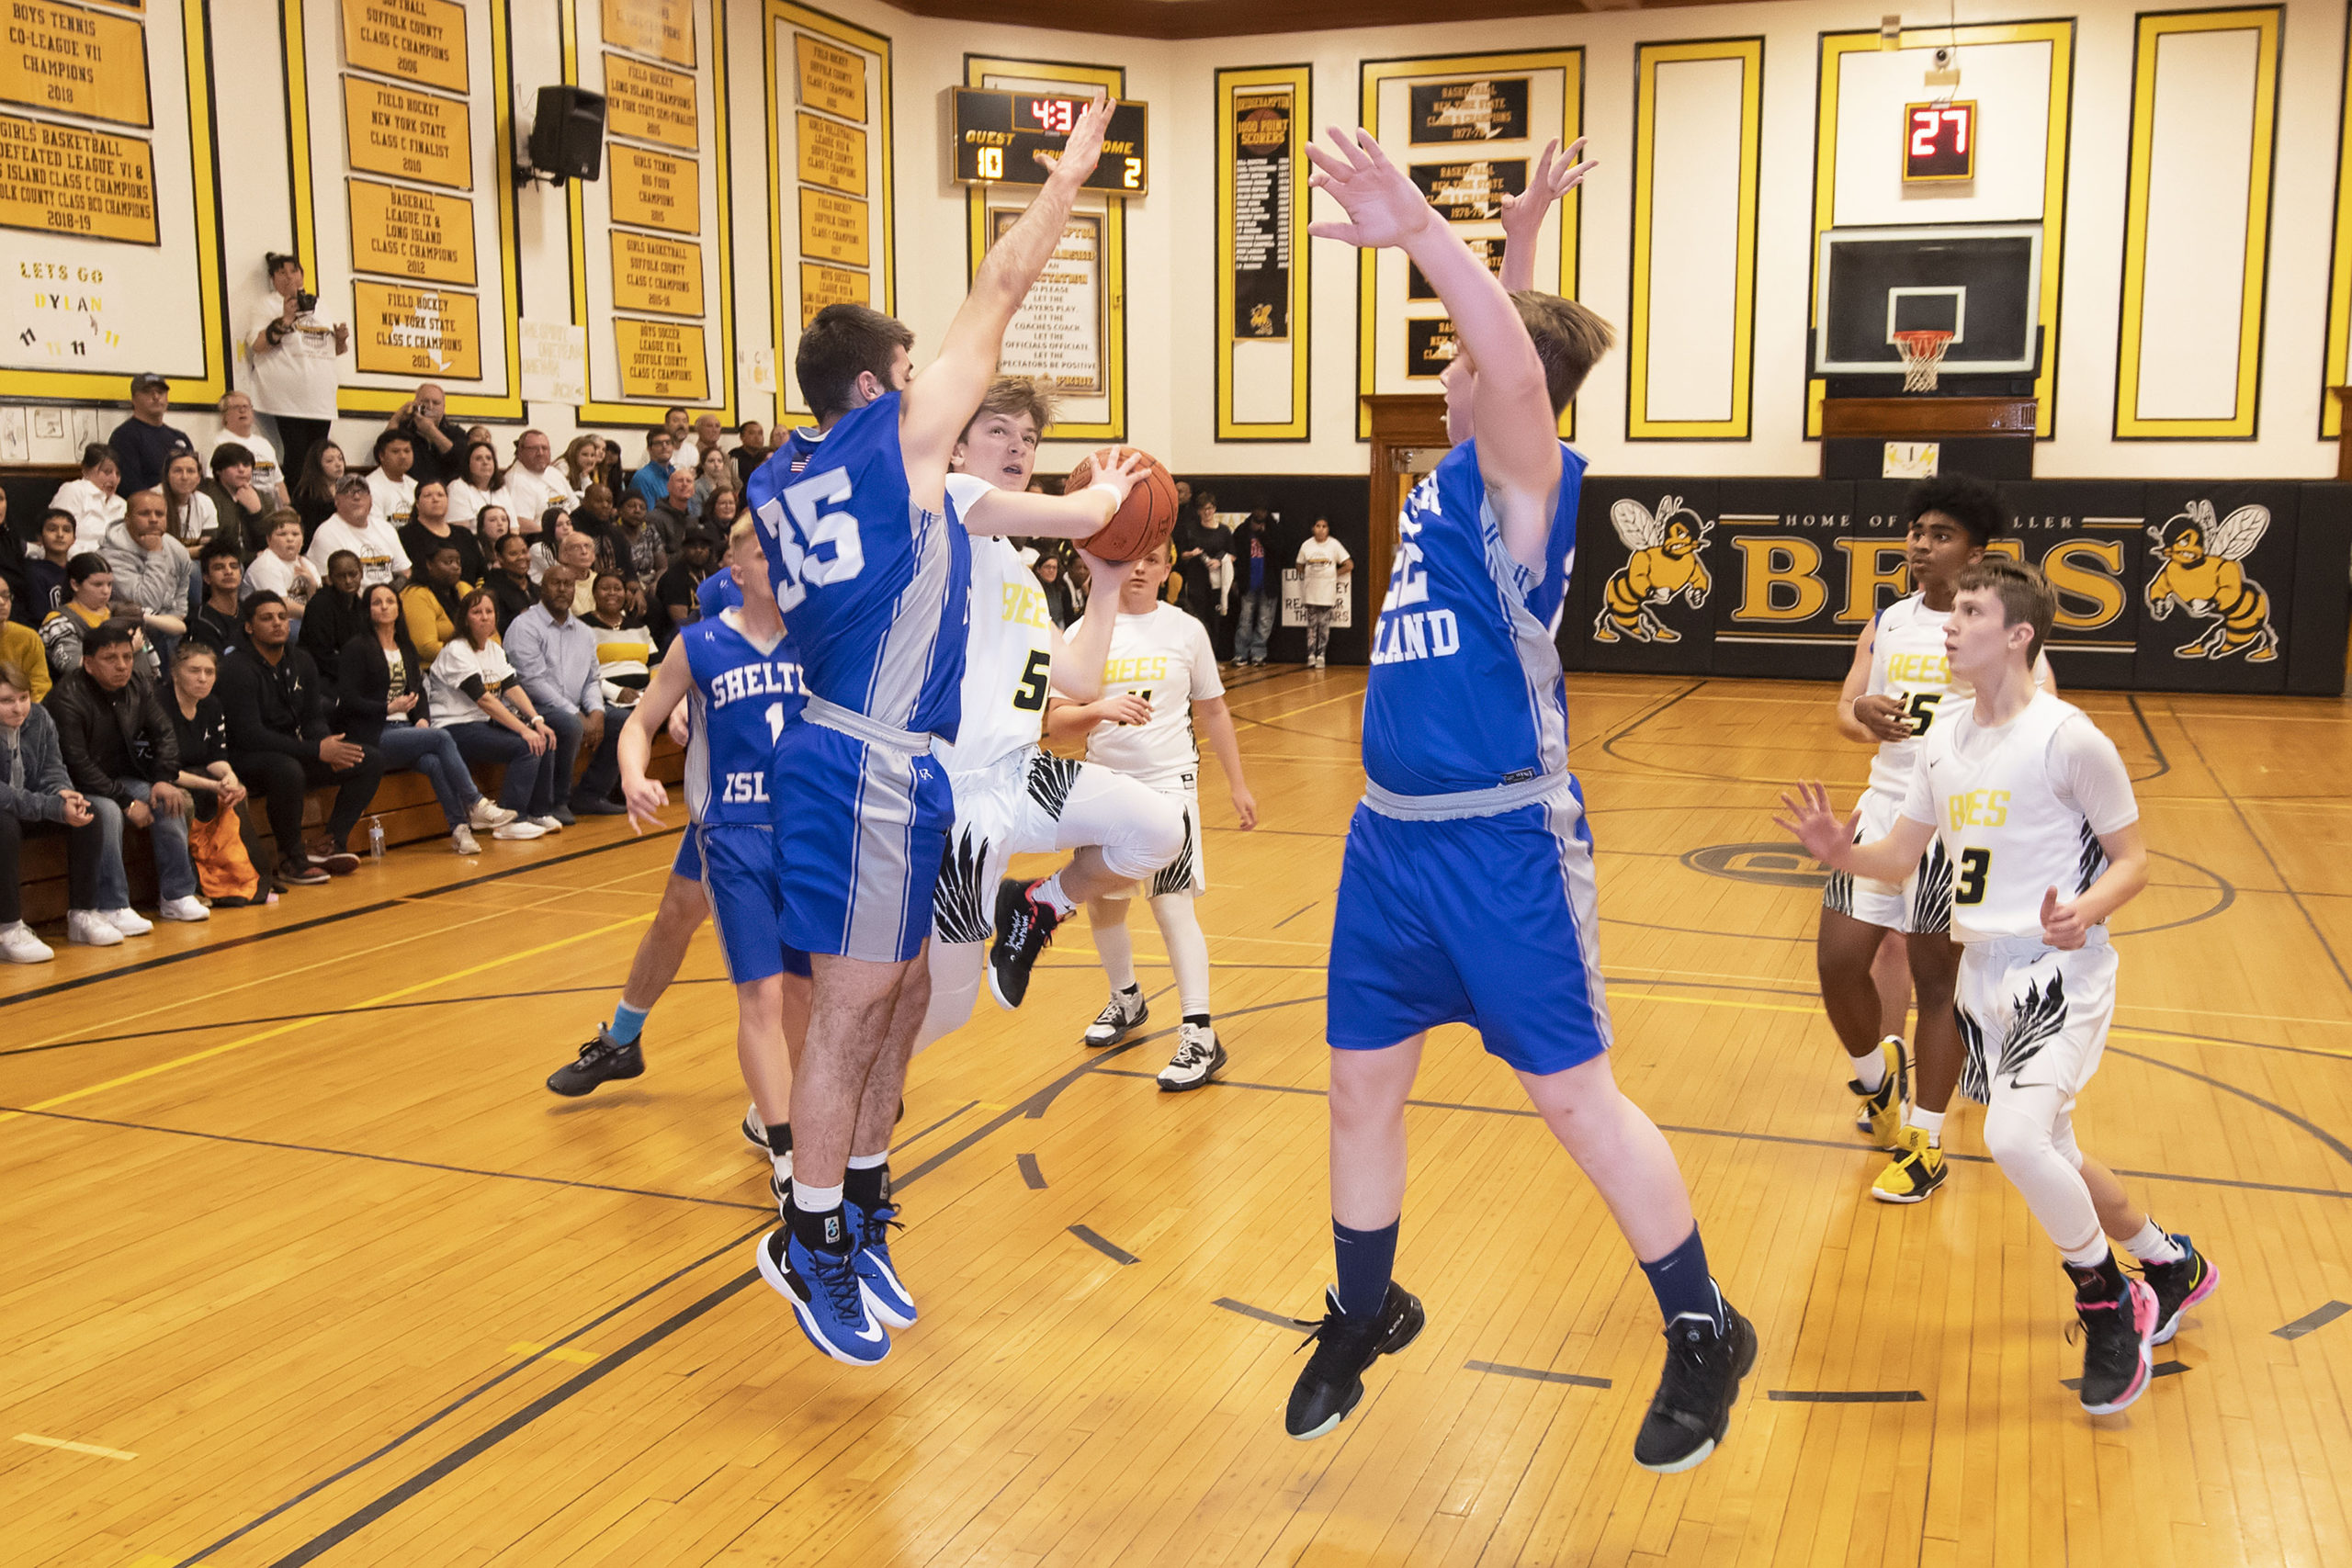 Bridgehampton freshman Scott Vinski takes on Shelter Island defenders in the paint. He scored 20 of the Bees' 40 points in last week's final game in The Hive.